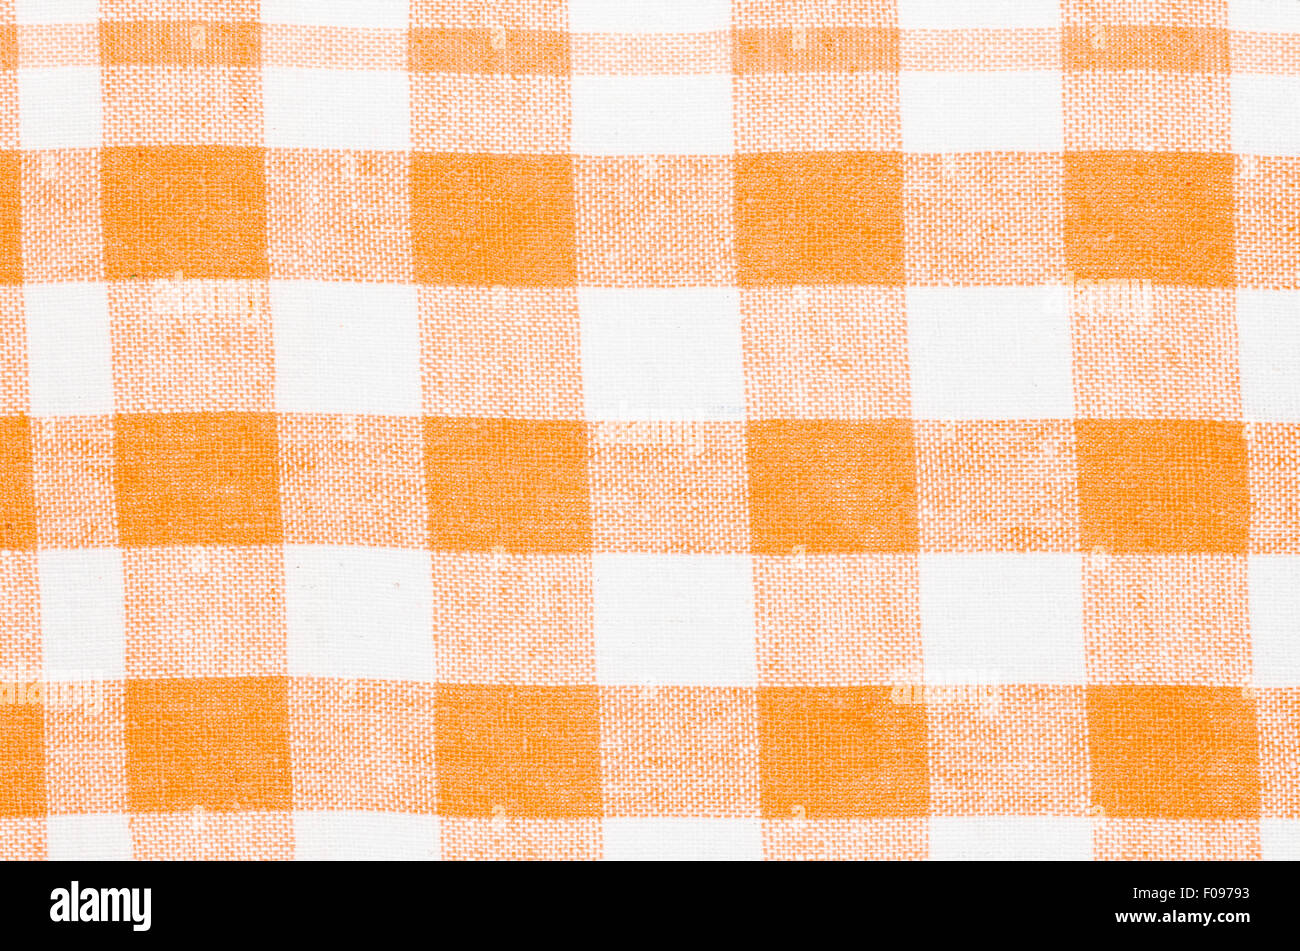 Orange And White Kitchen Checkered Orange And White Kitchen Towel Background Texture Stock